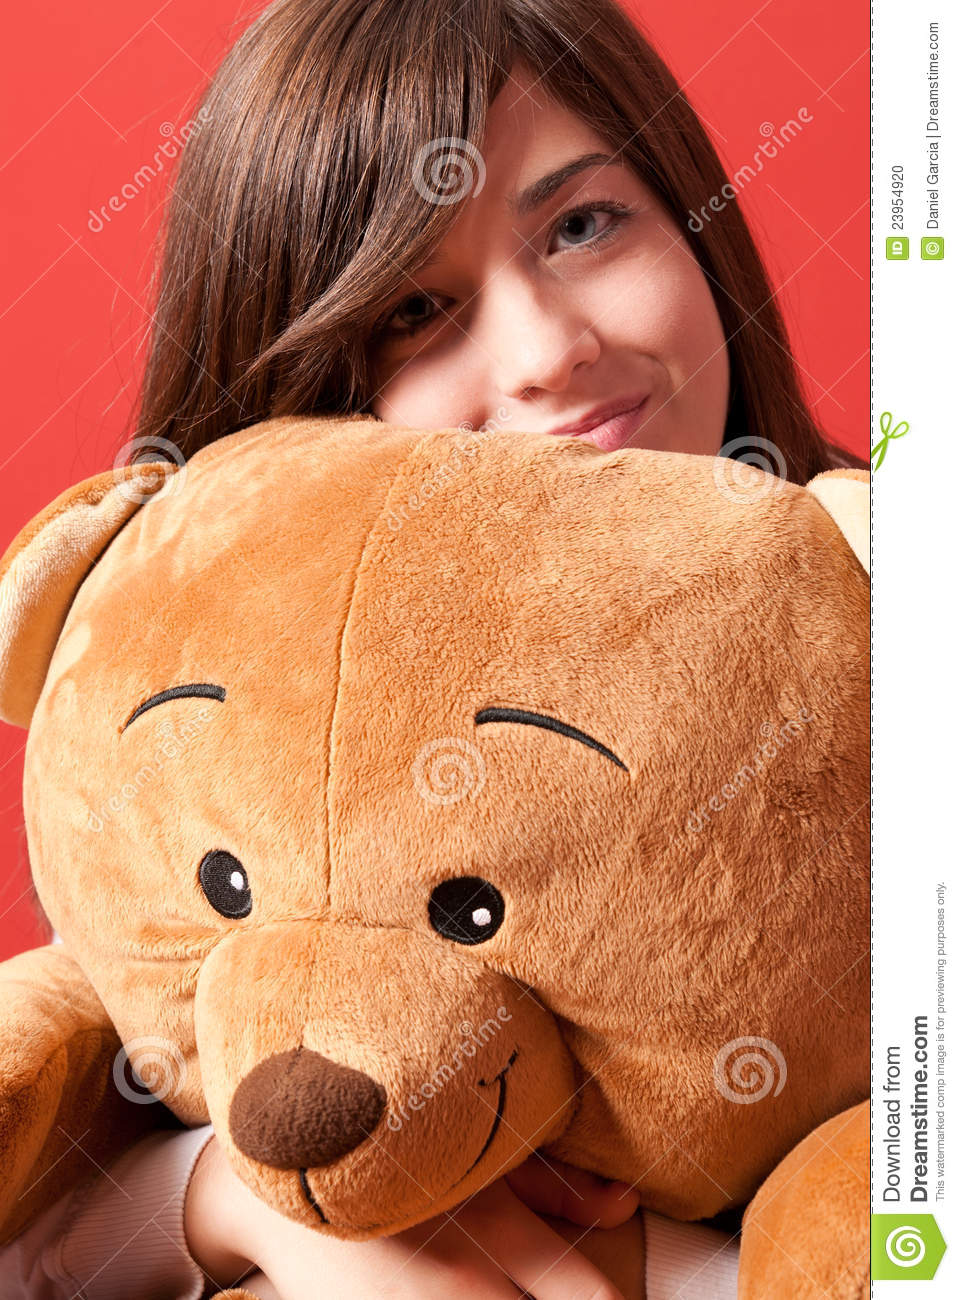 Young woman embracing teddy bear sitting close-up